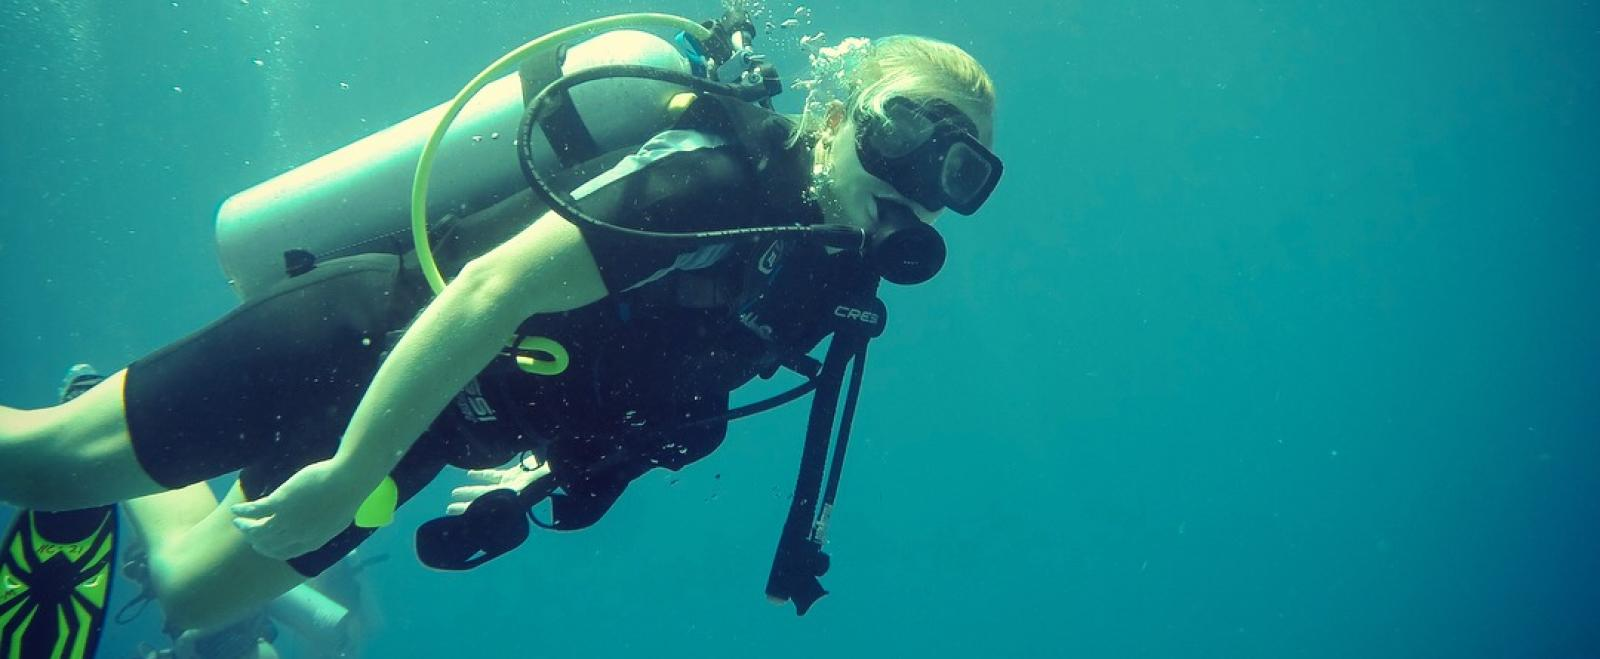 A Projects Abroad volunteer that learnt to dive in Thailand after taking a divemaster course on a conservation project